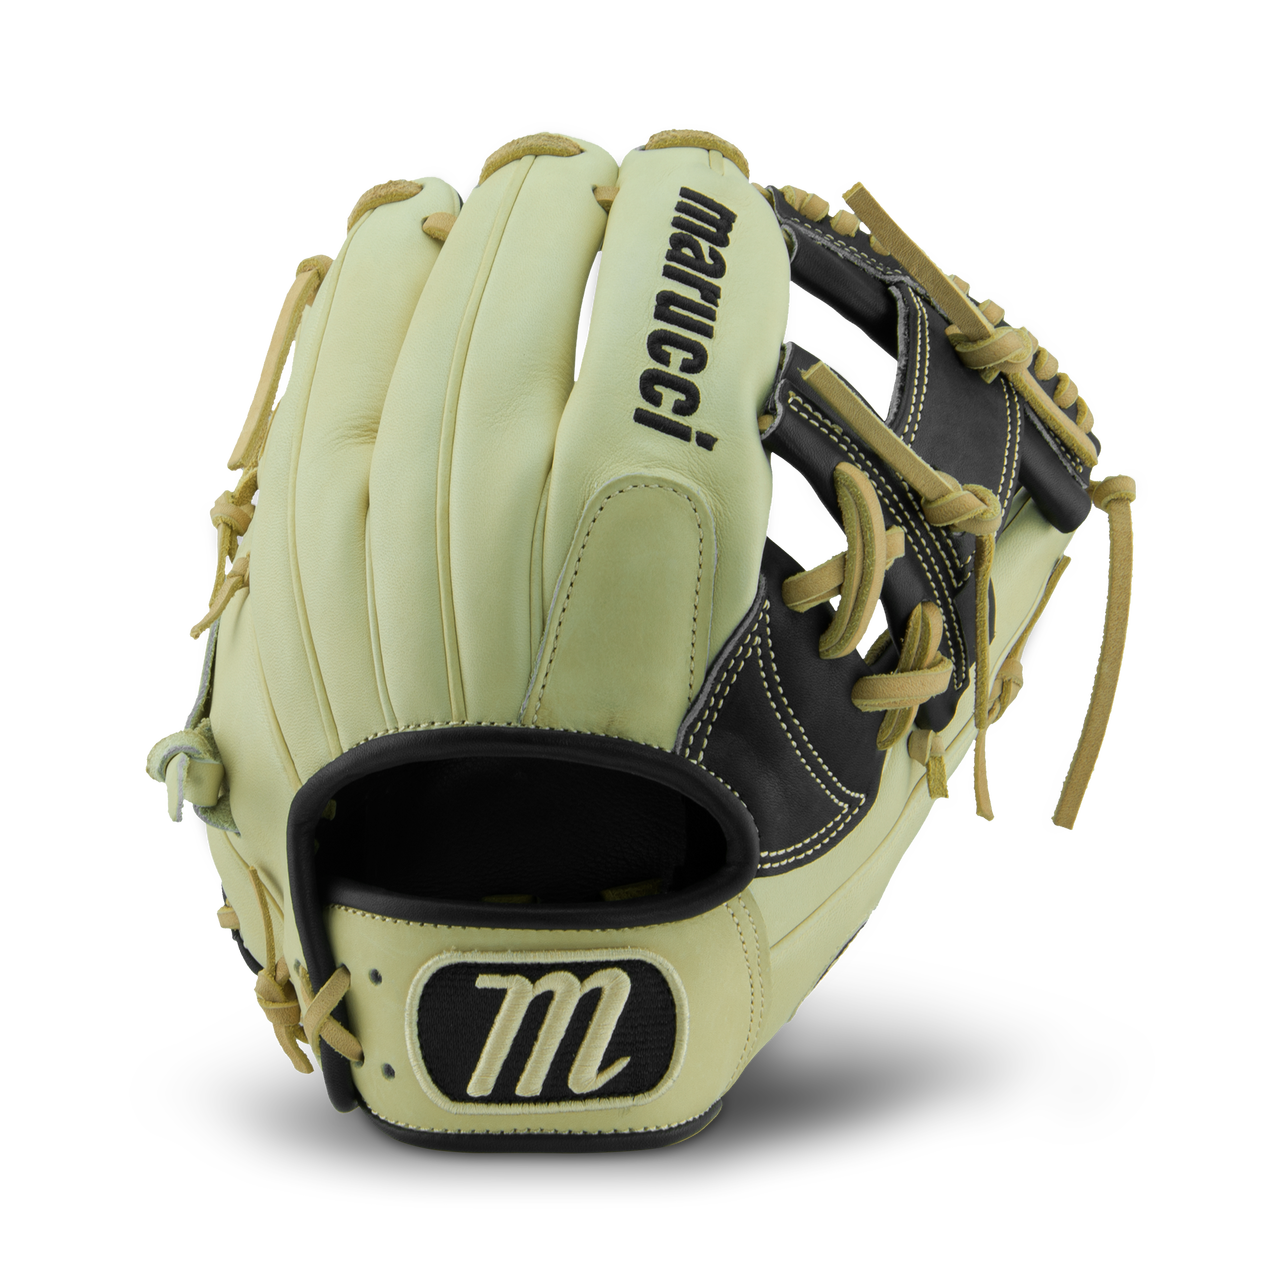 marucci-founders-11-5-i-web-baseball-glove-right-hand-throw MFGFS1150I-RightHandThrow  849817055991 Constructed with premium Japanese kip leather and an understanding of the